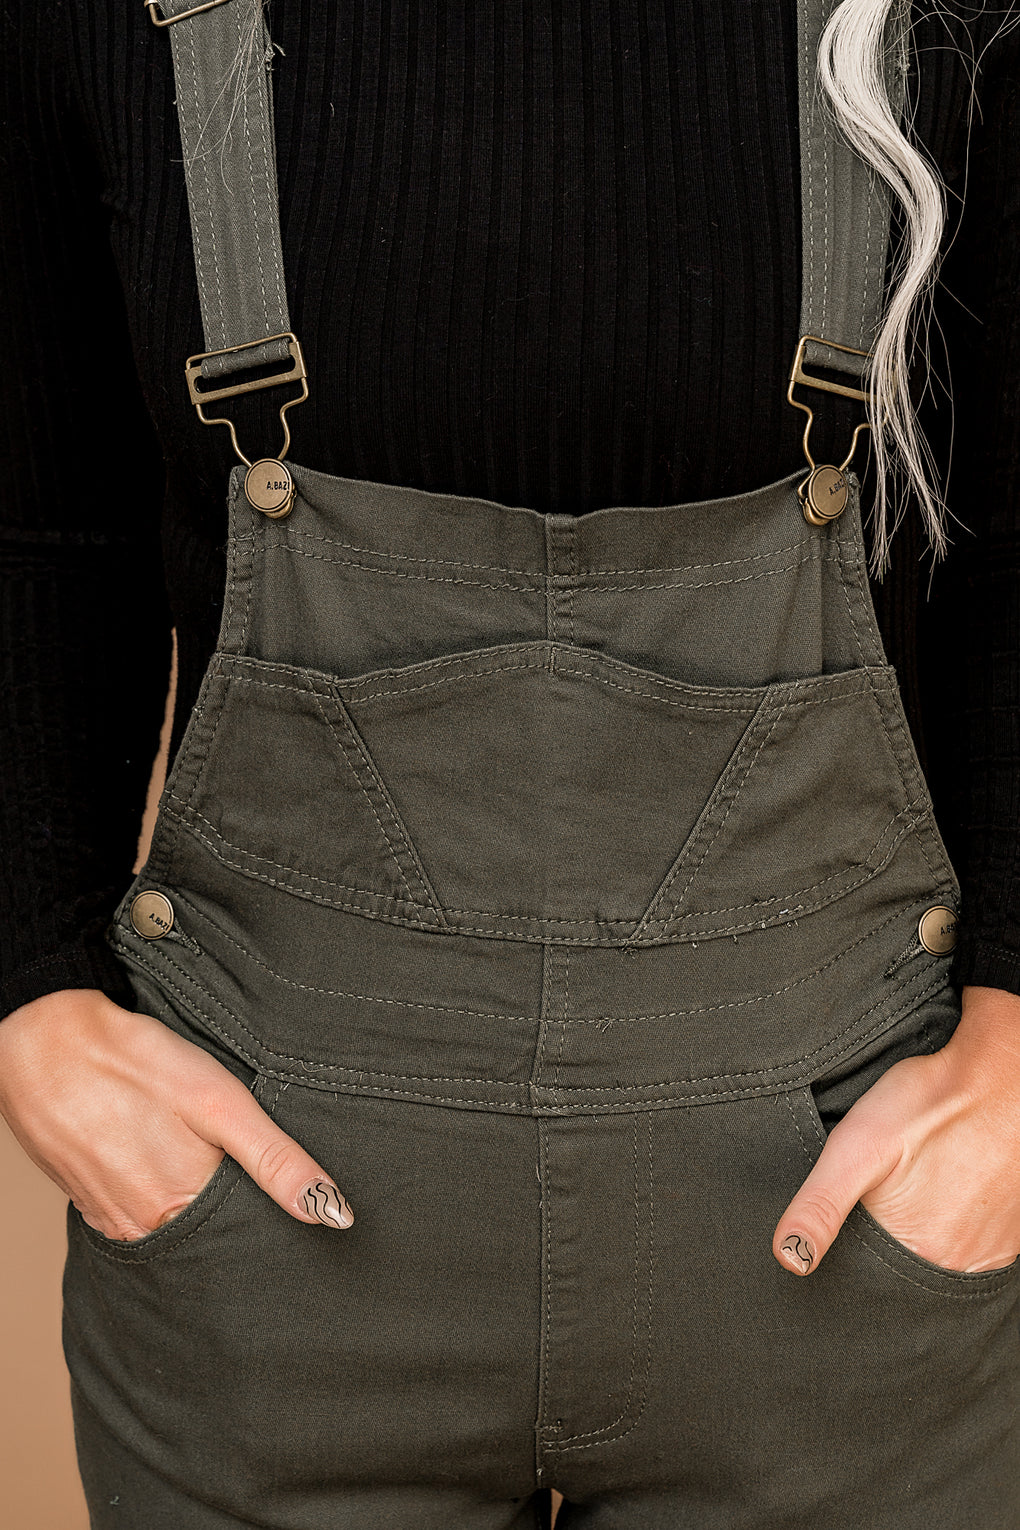 City Girl Overalls in Olive